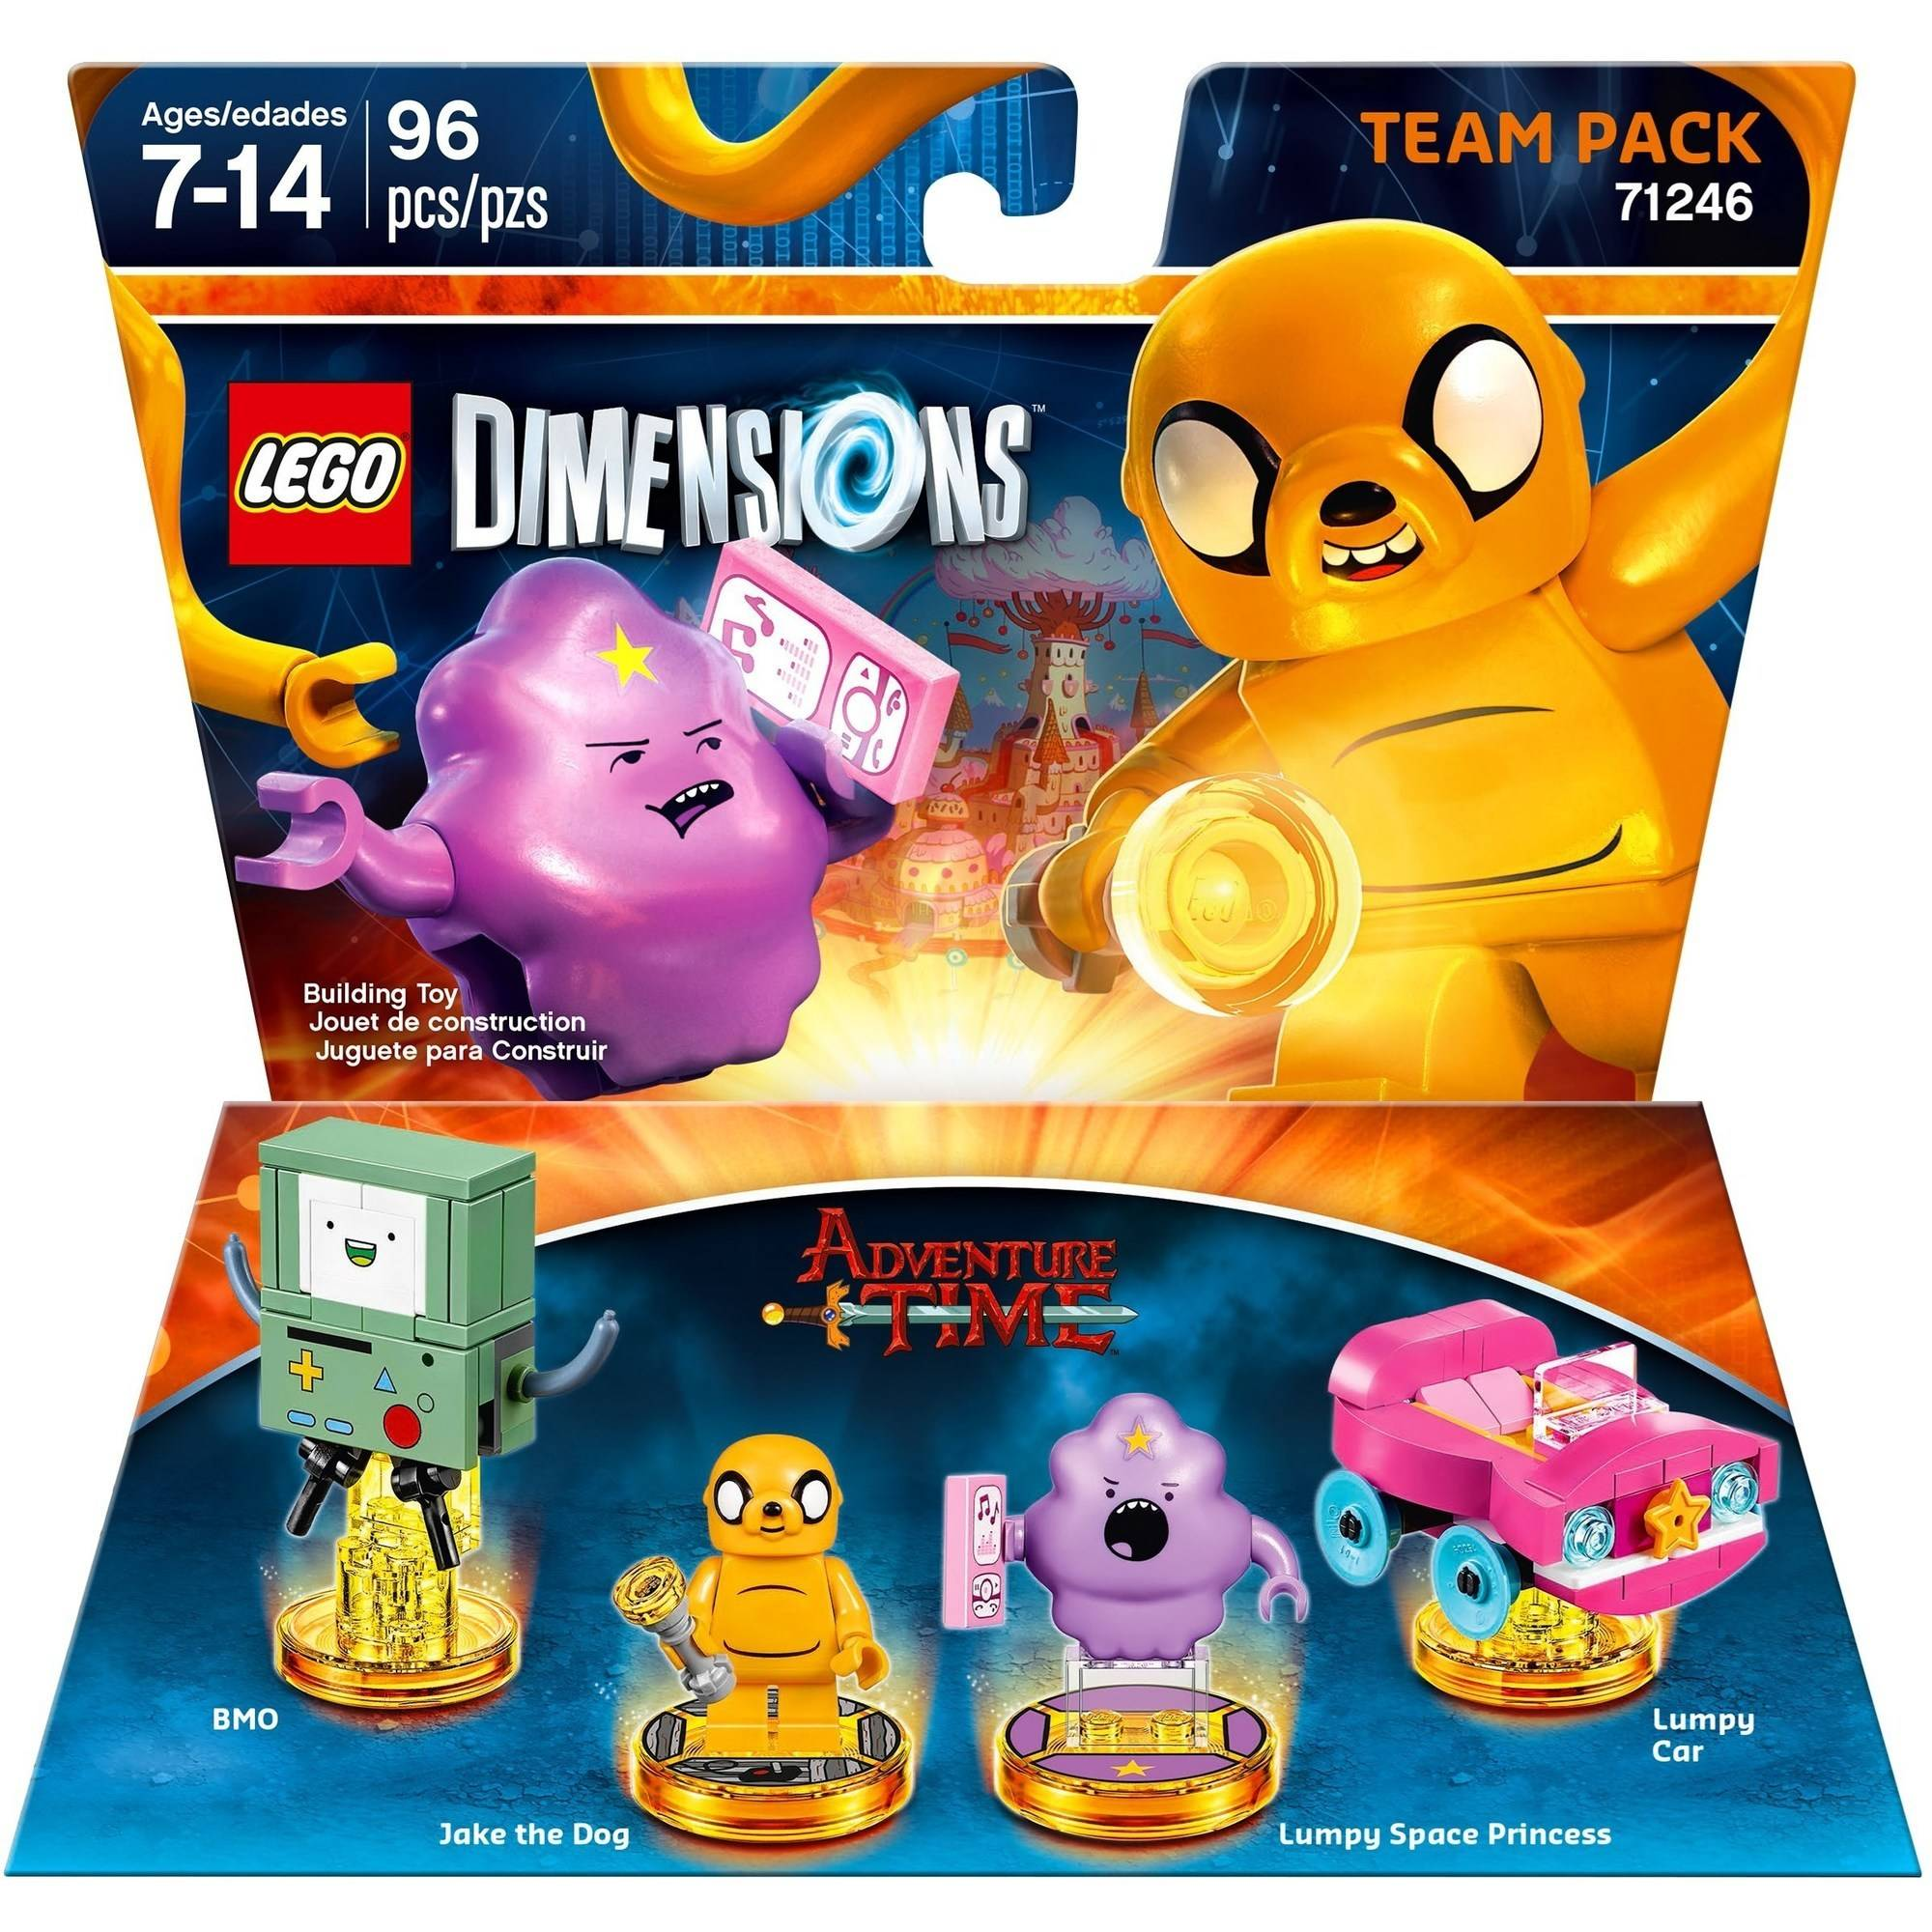 LEGO Dimensions Adventure Time Team Pack (Universal)